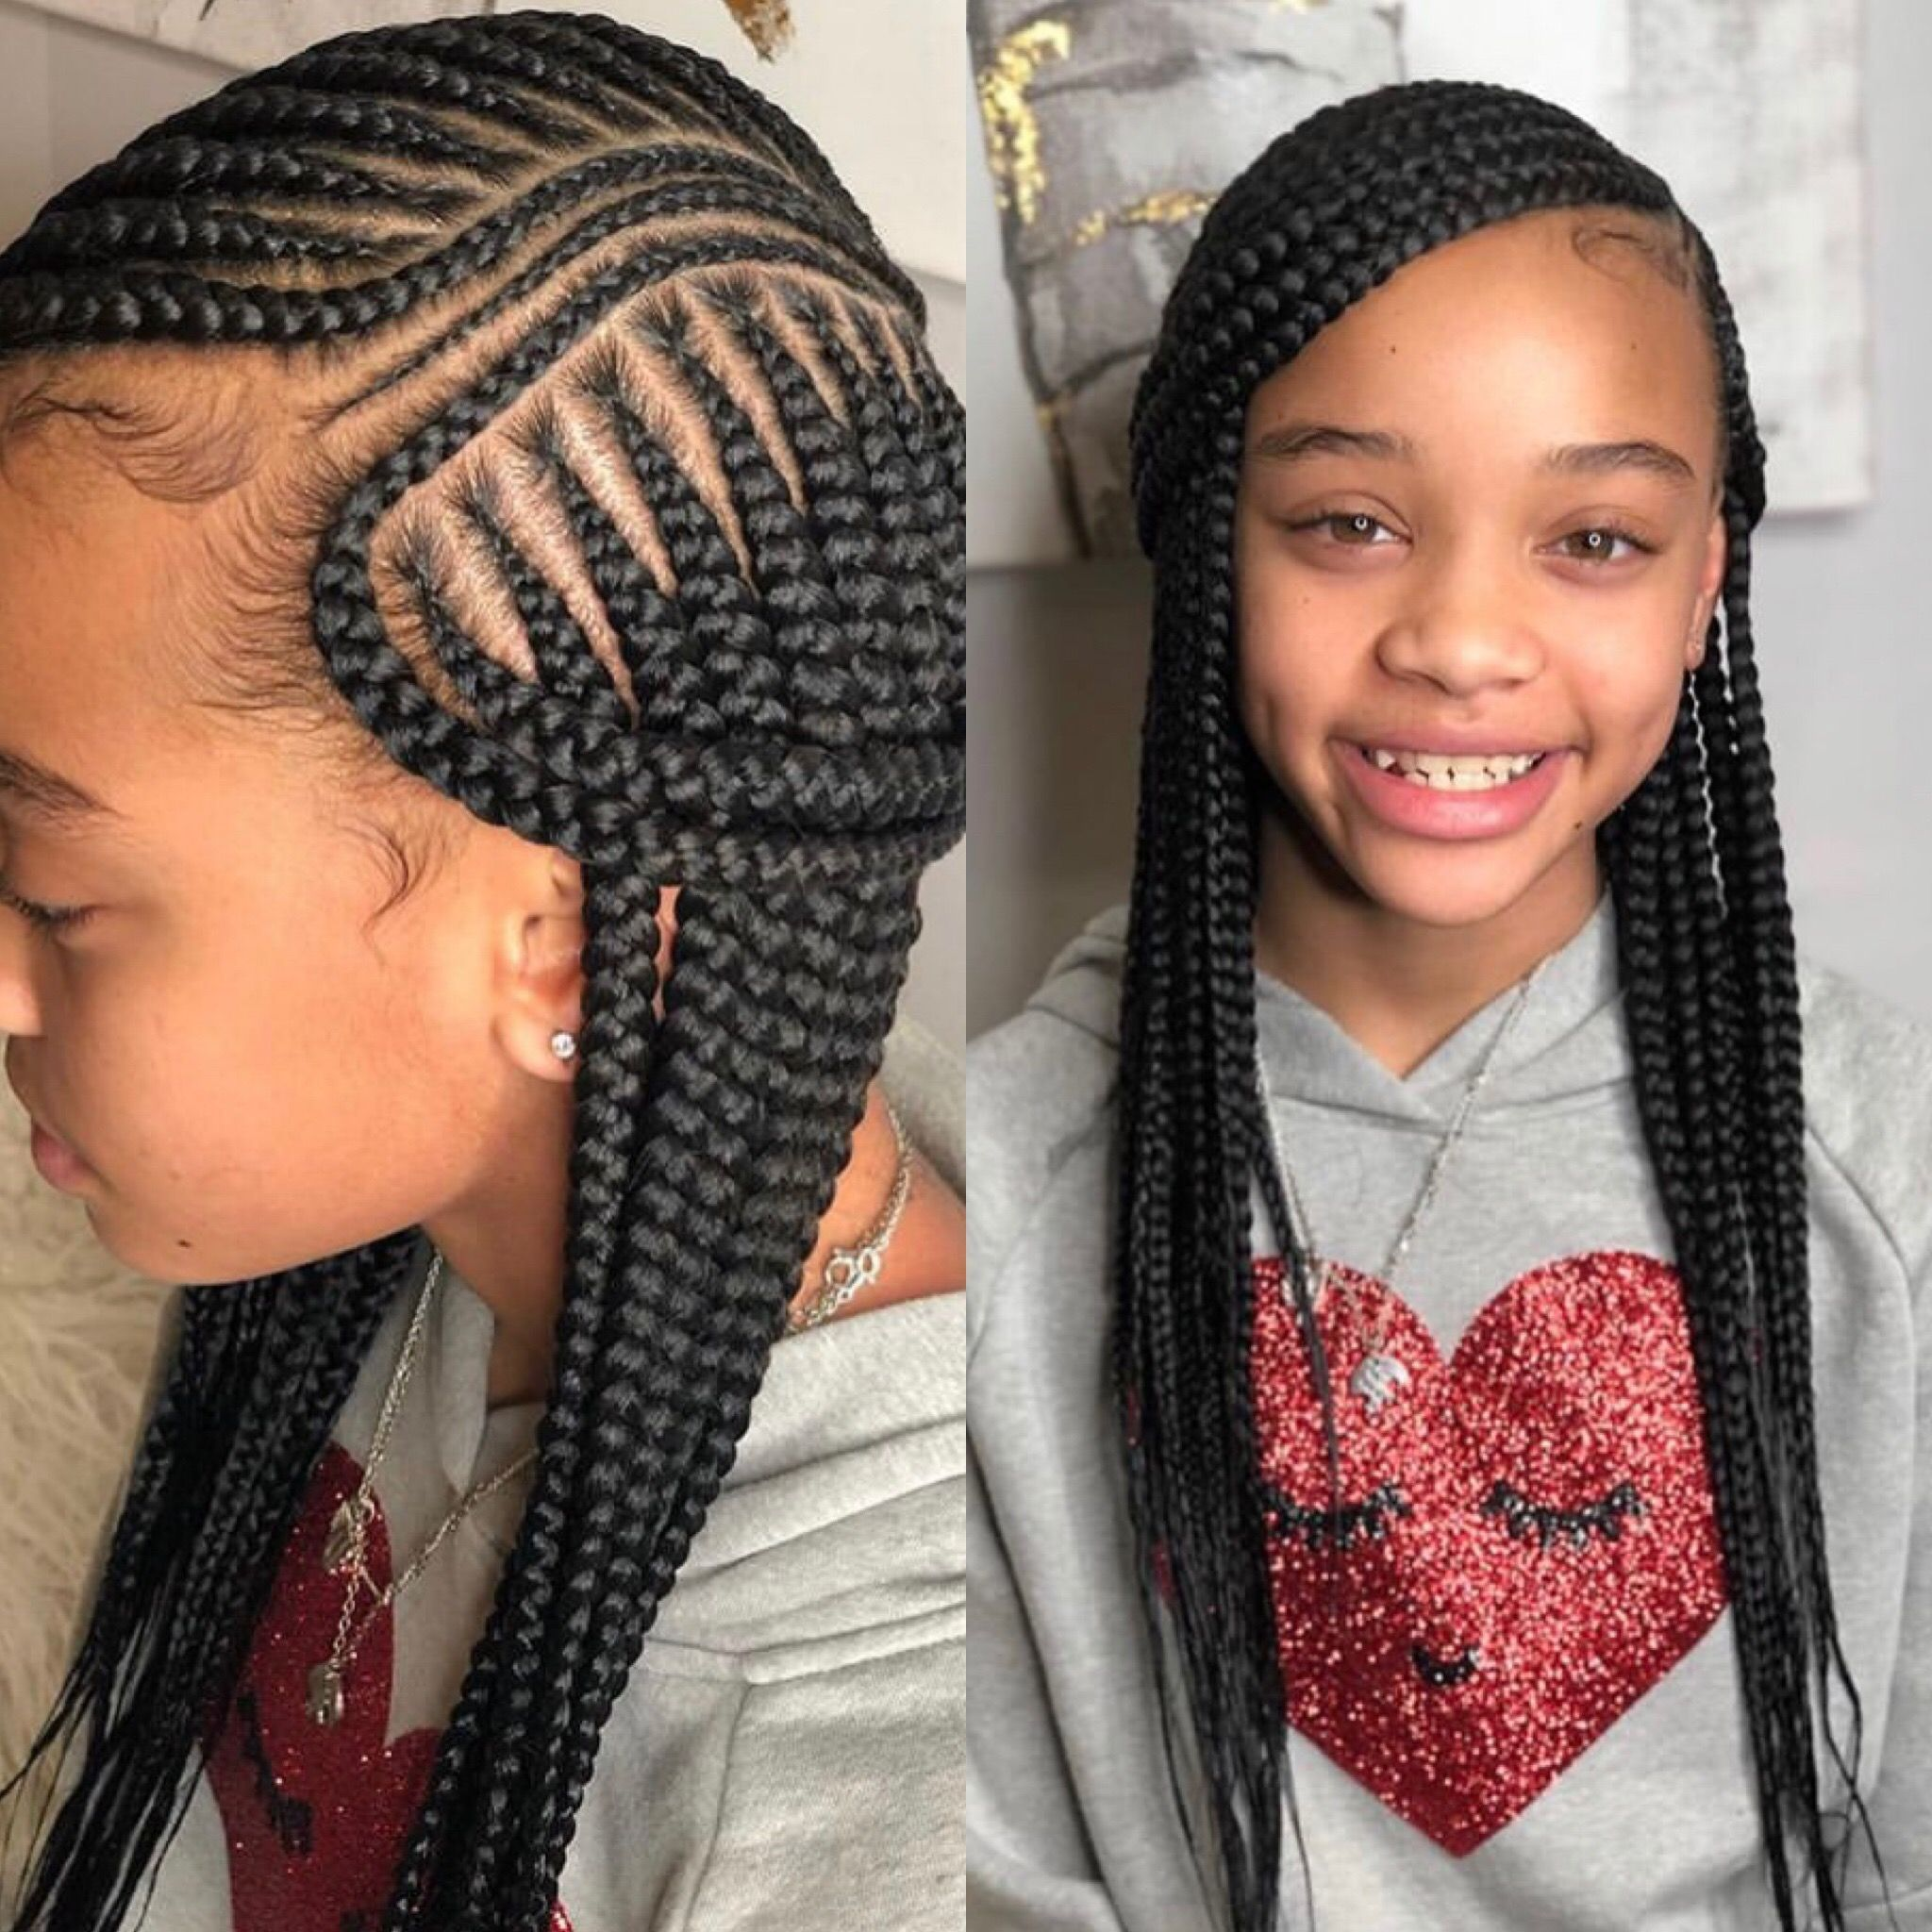 Hairstyle Trends 26 Cutest Braid Hairstyles For Kids Photos Collection In 2020 Kids Braided Hairstyles Black Kids Hairstyles Black Girl Braided Hairstyles